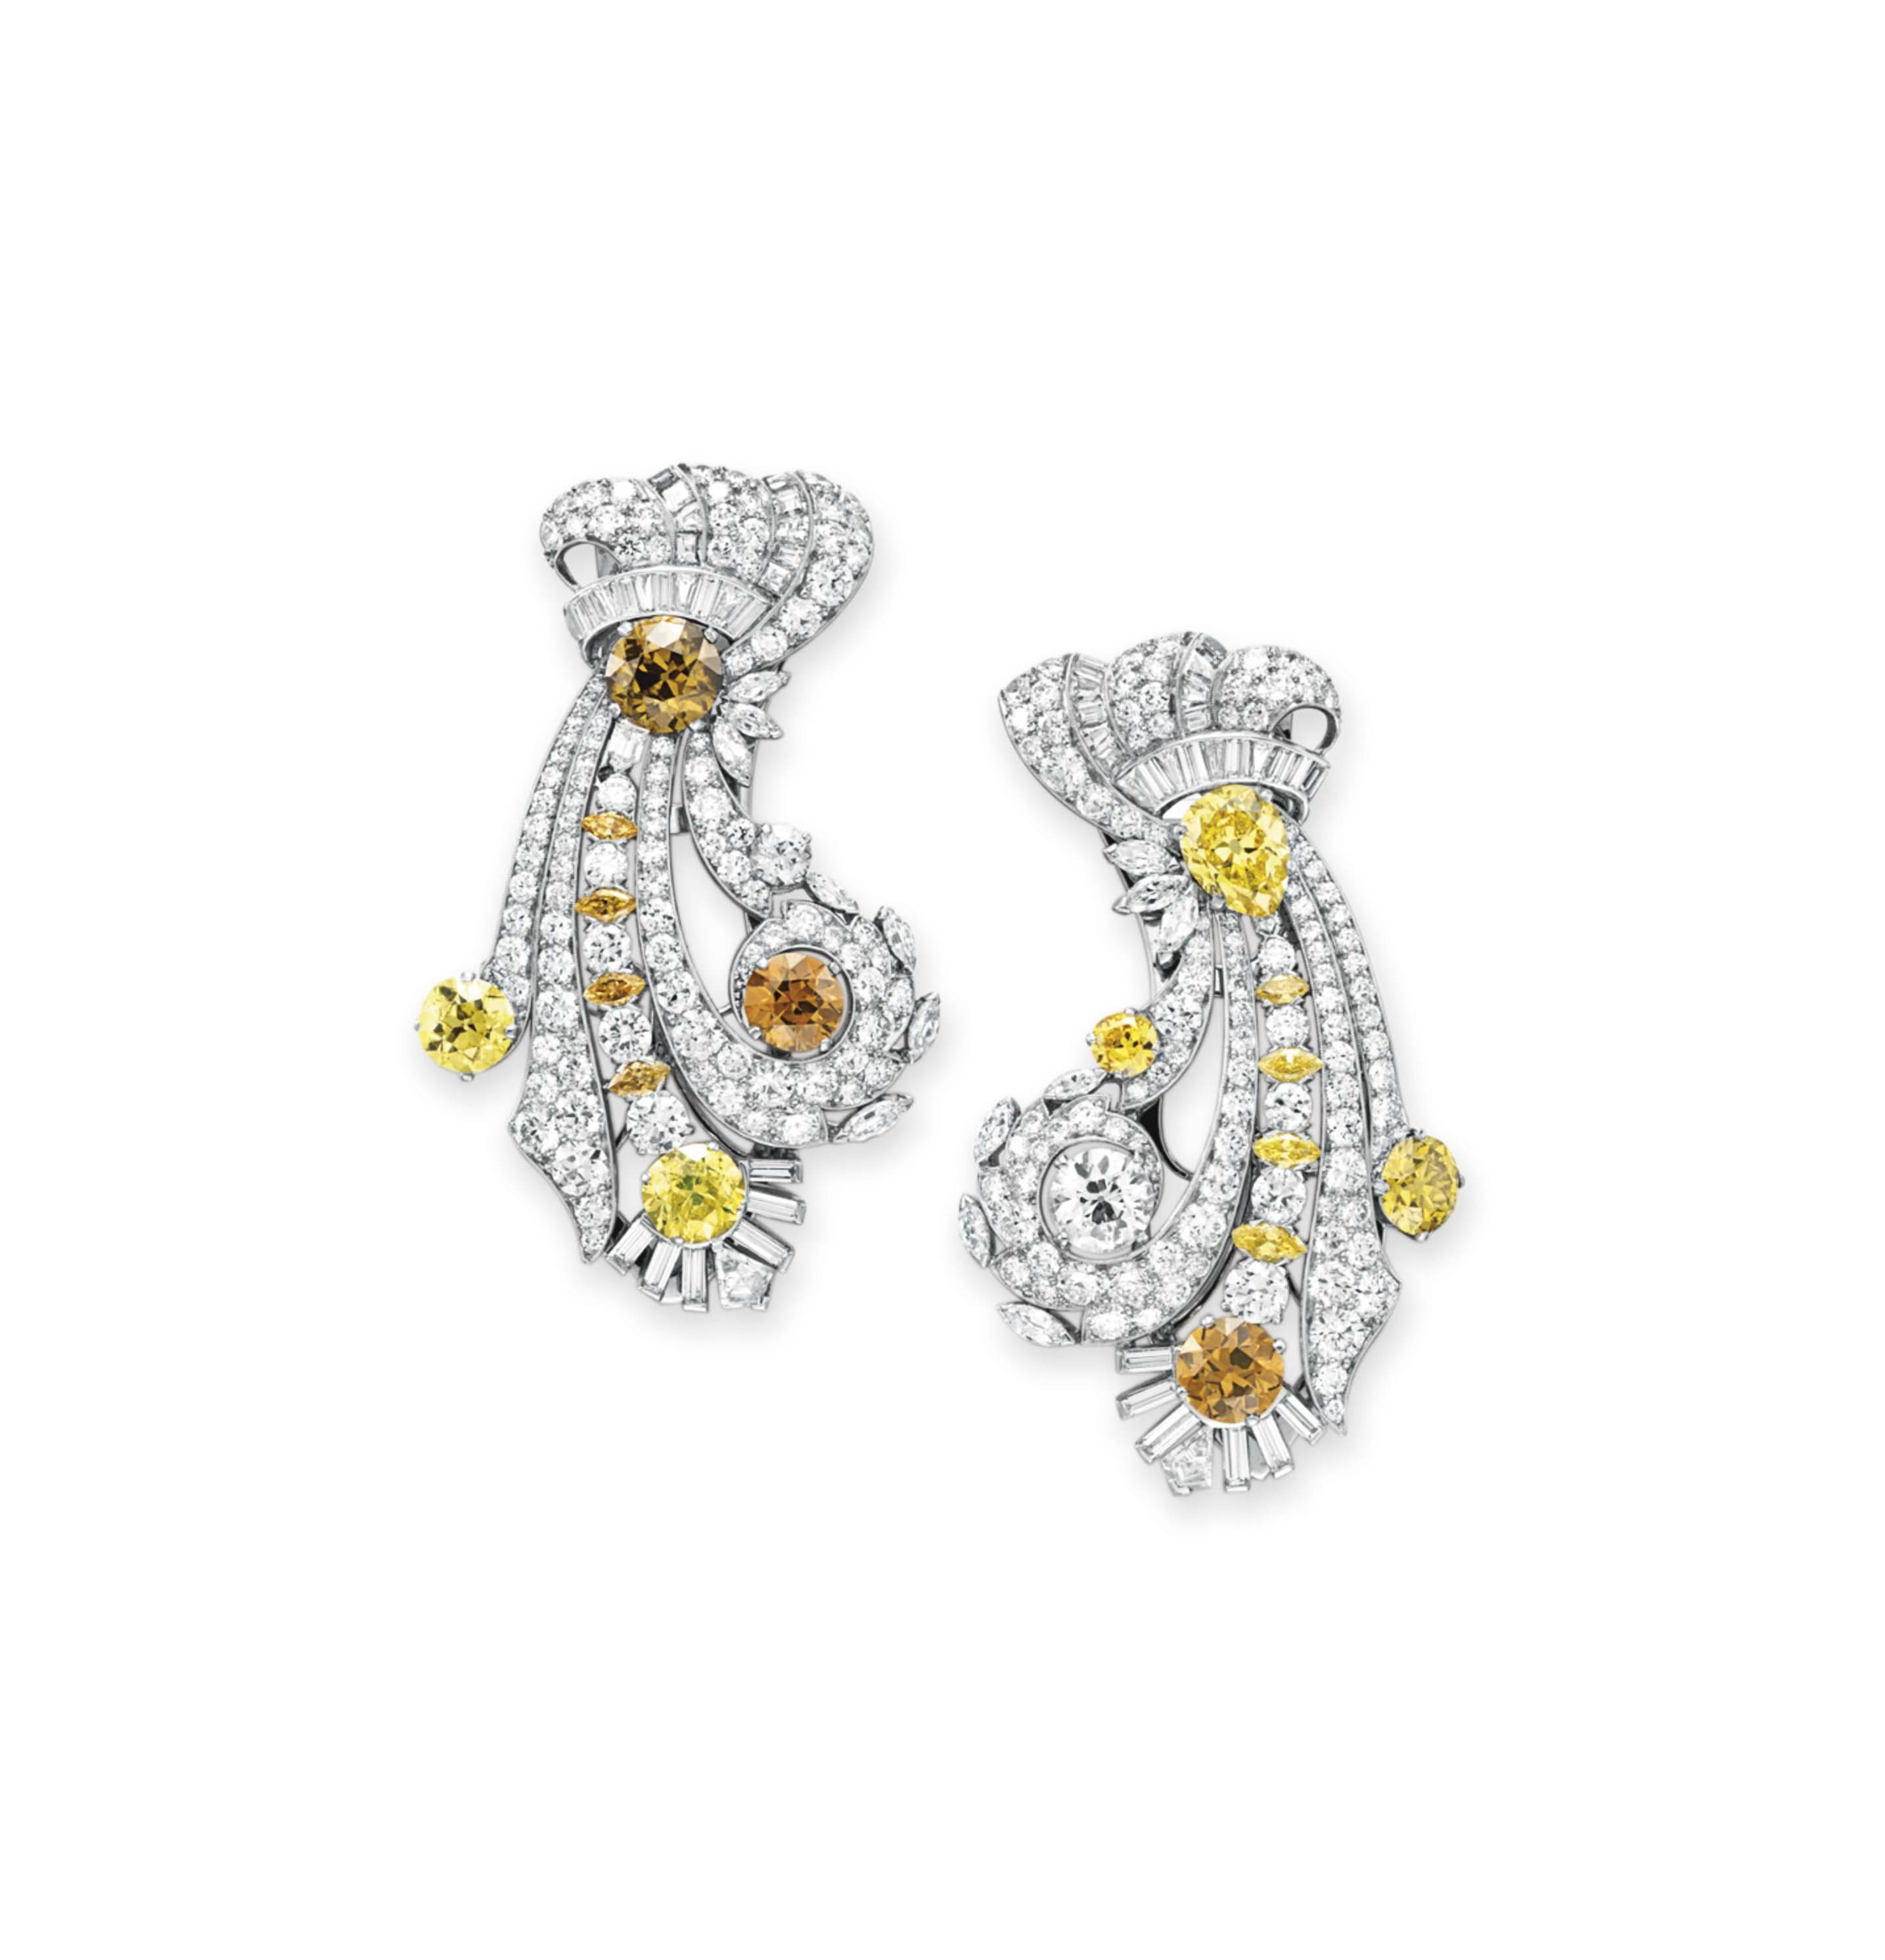 A PAIR OF DIAMOND AND COLORED DIAMOND CLIP BROOCHES, BY RAYMOND YARD